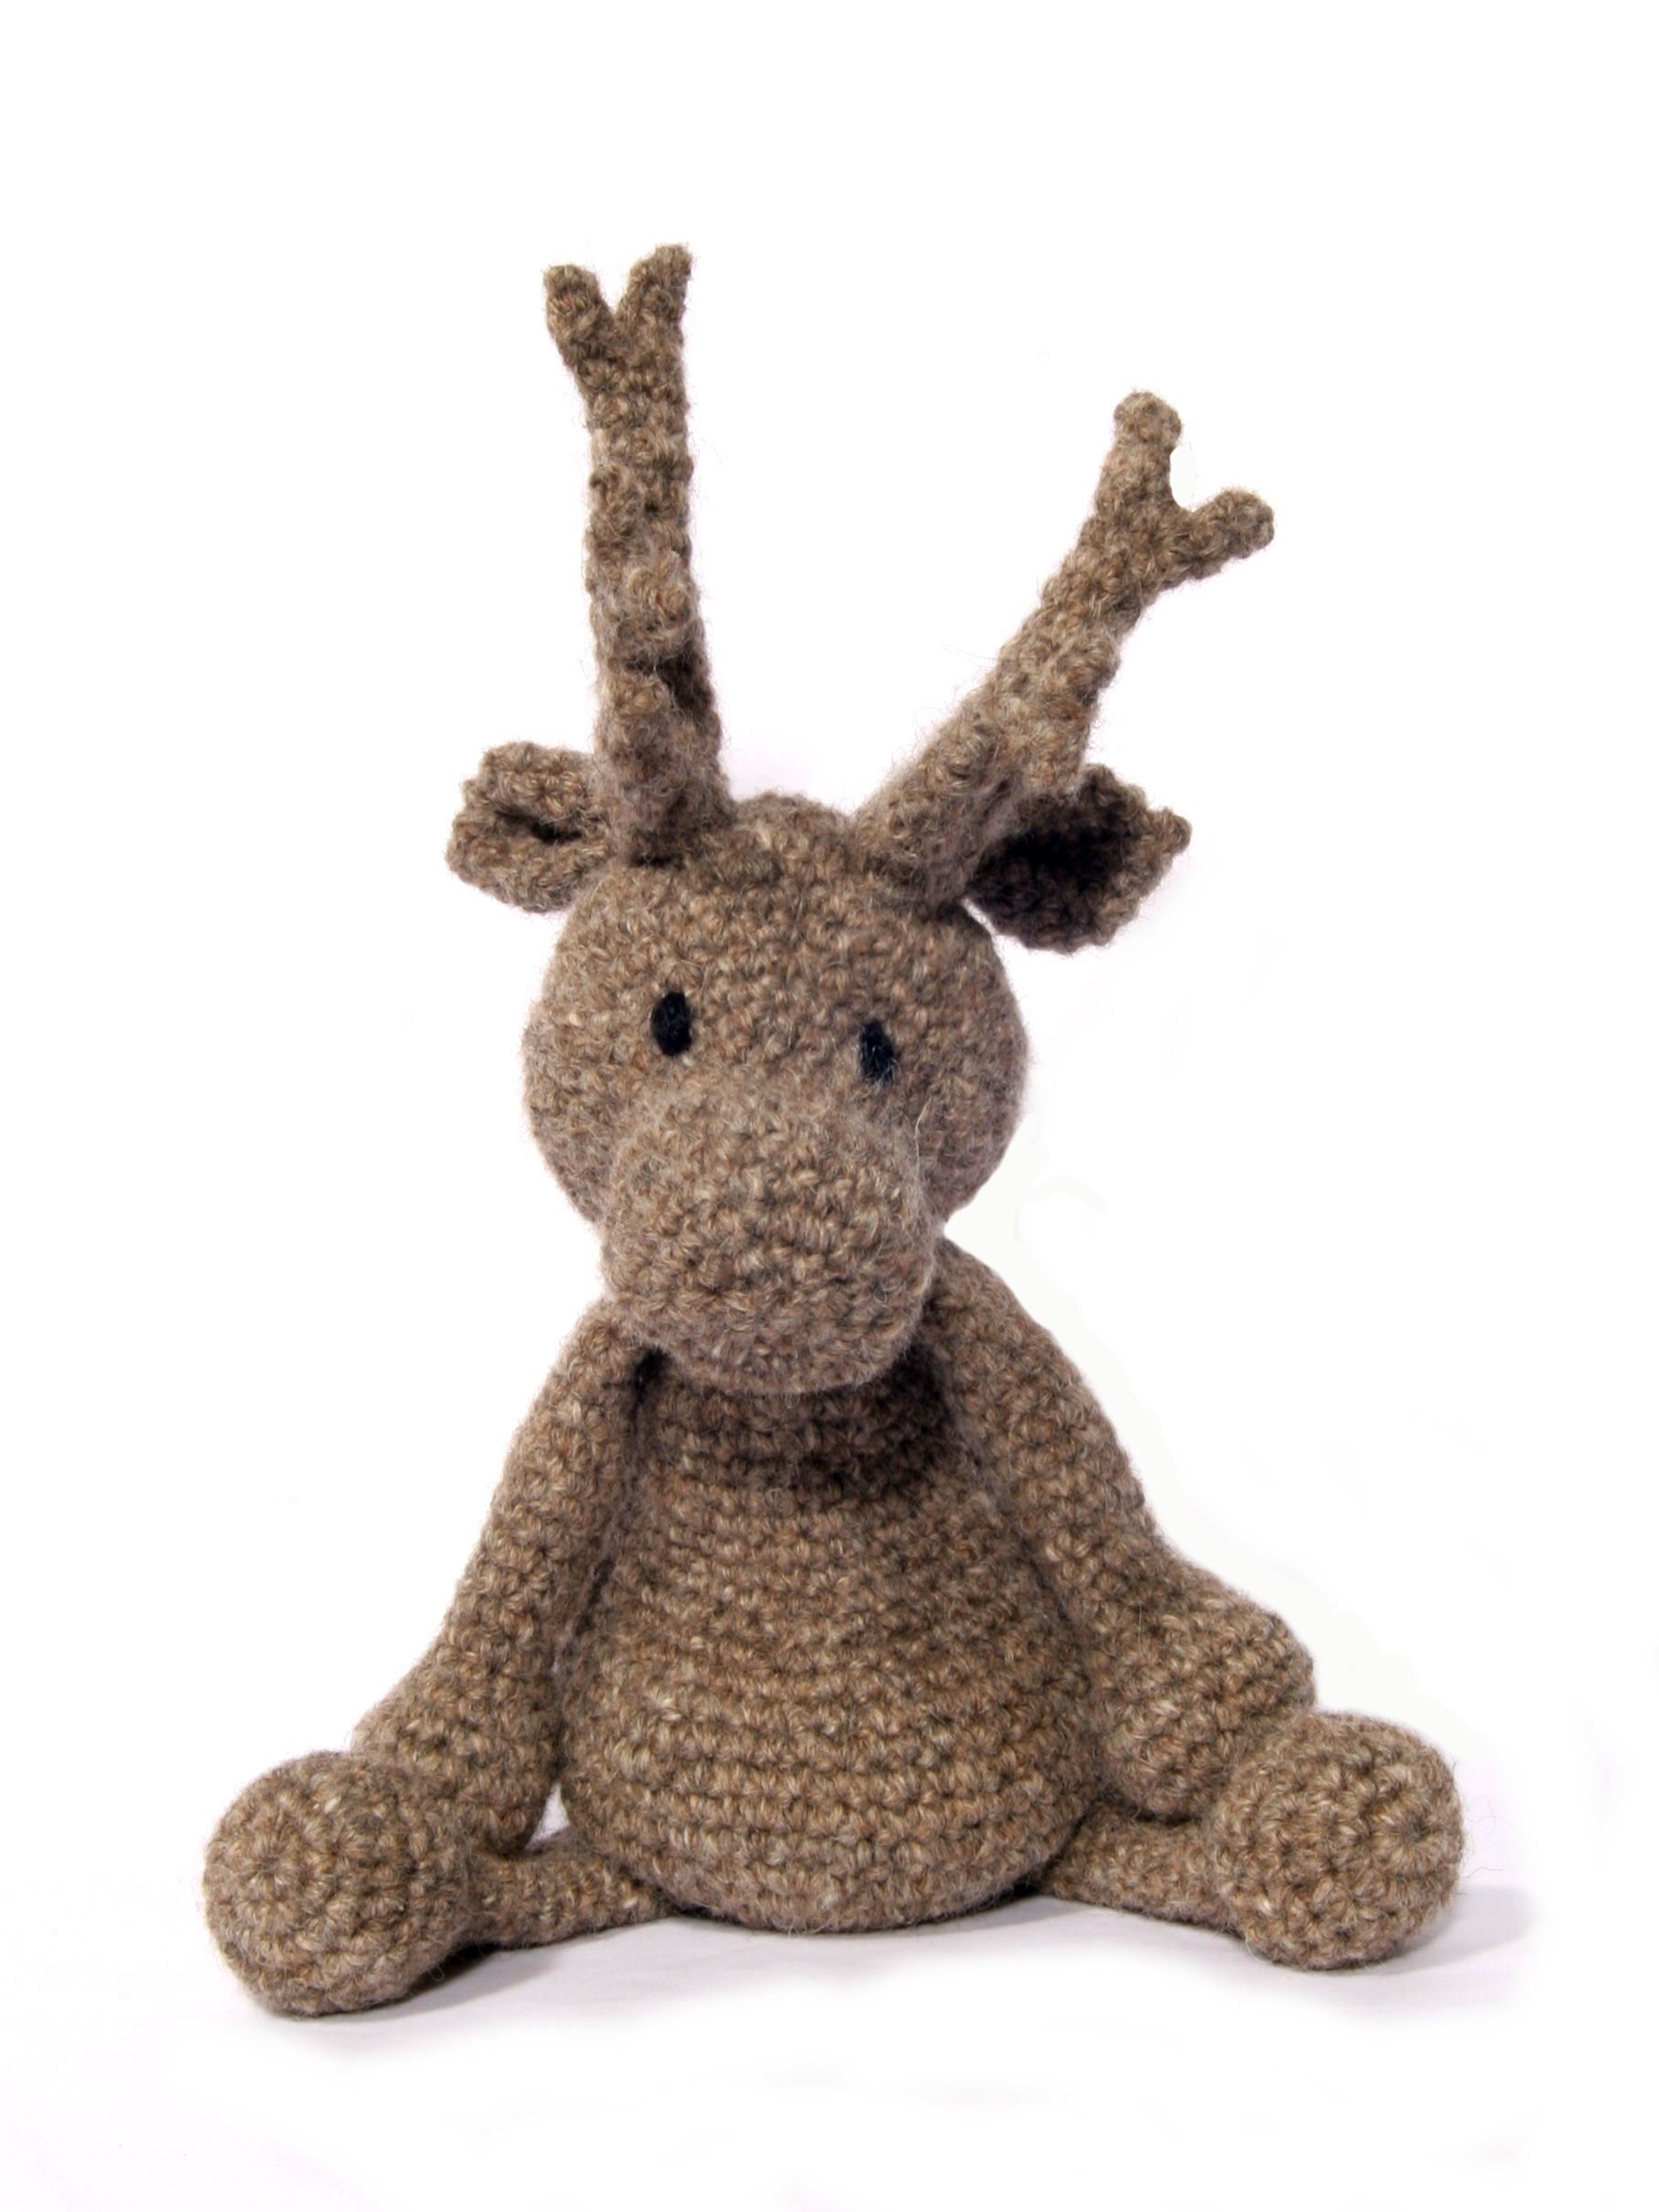 Donna the reindeer crochet kit made by the toft alpaca shop and kit crochet amigurumi nice christmas pressie for a keen hooker crochet reindeer amigurumi pattern luxury dk alpaca yarn in your choice of colour bankloansurffo Choice Image